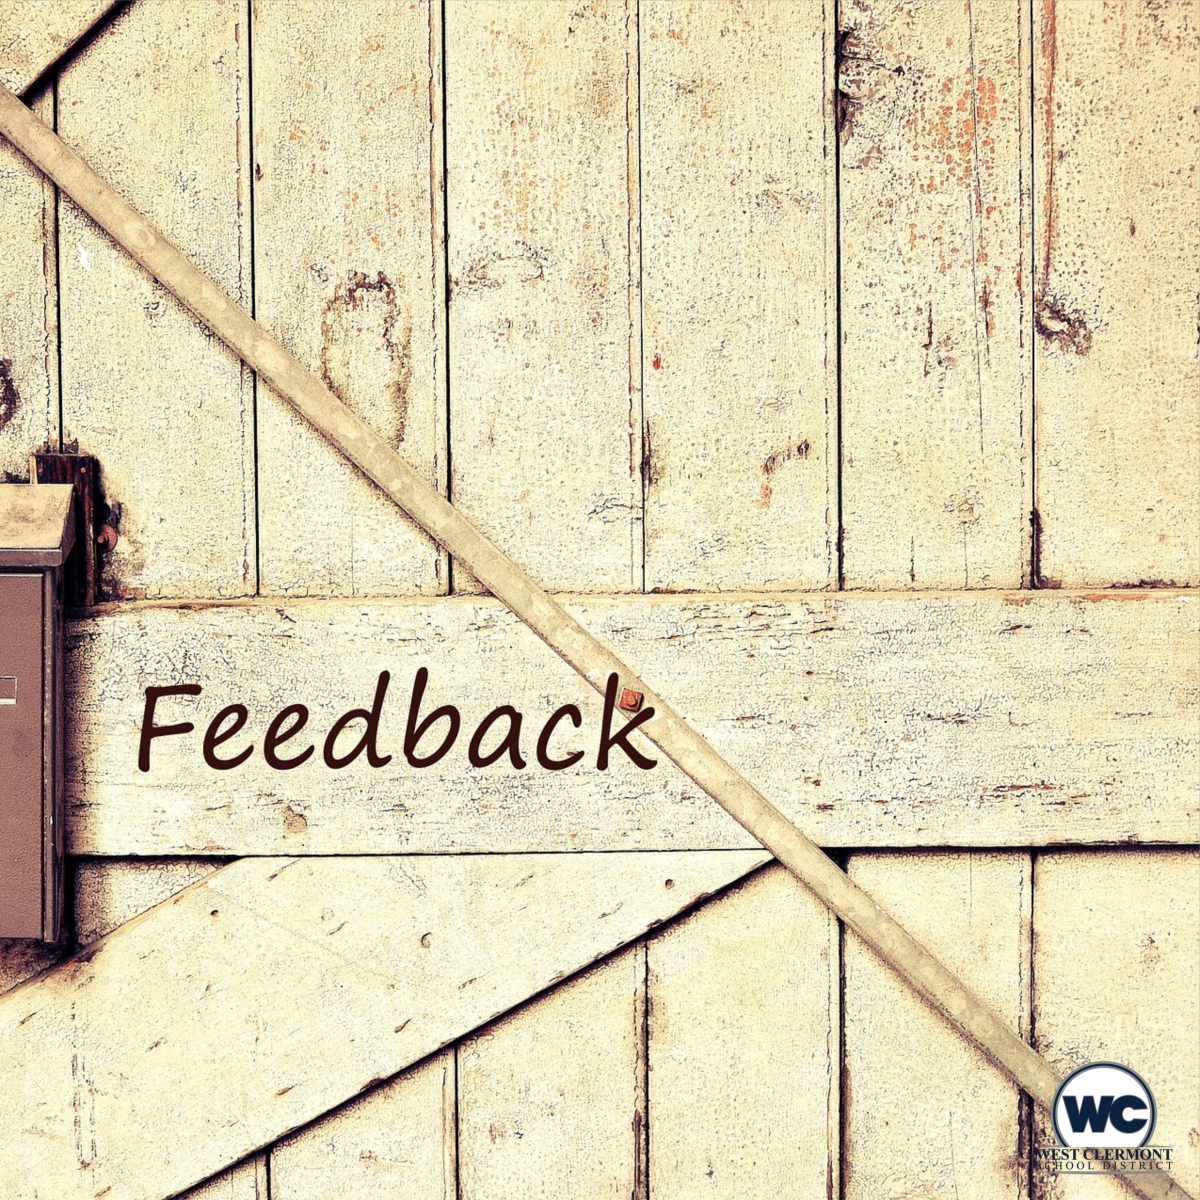 West Clermont Words:  Feedback